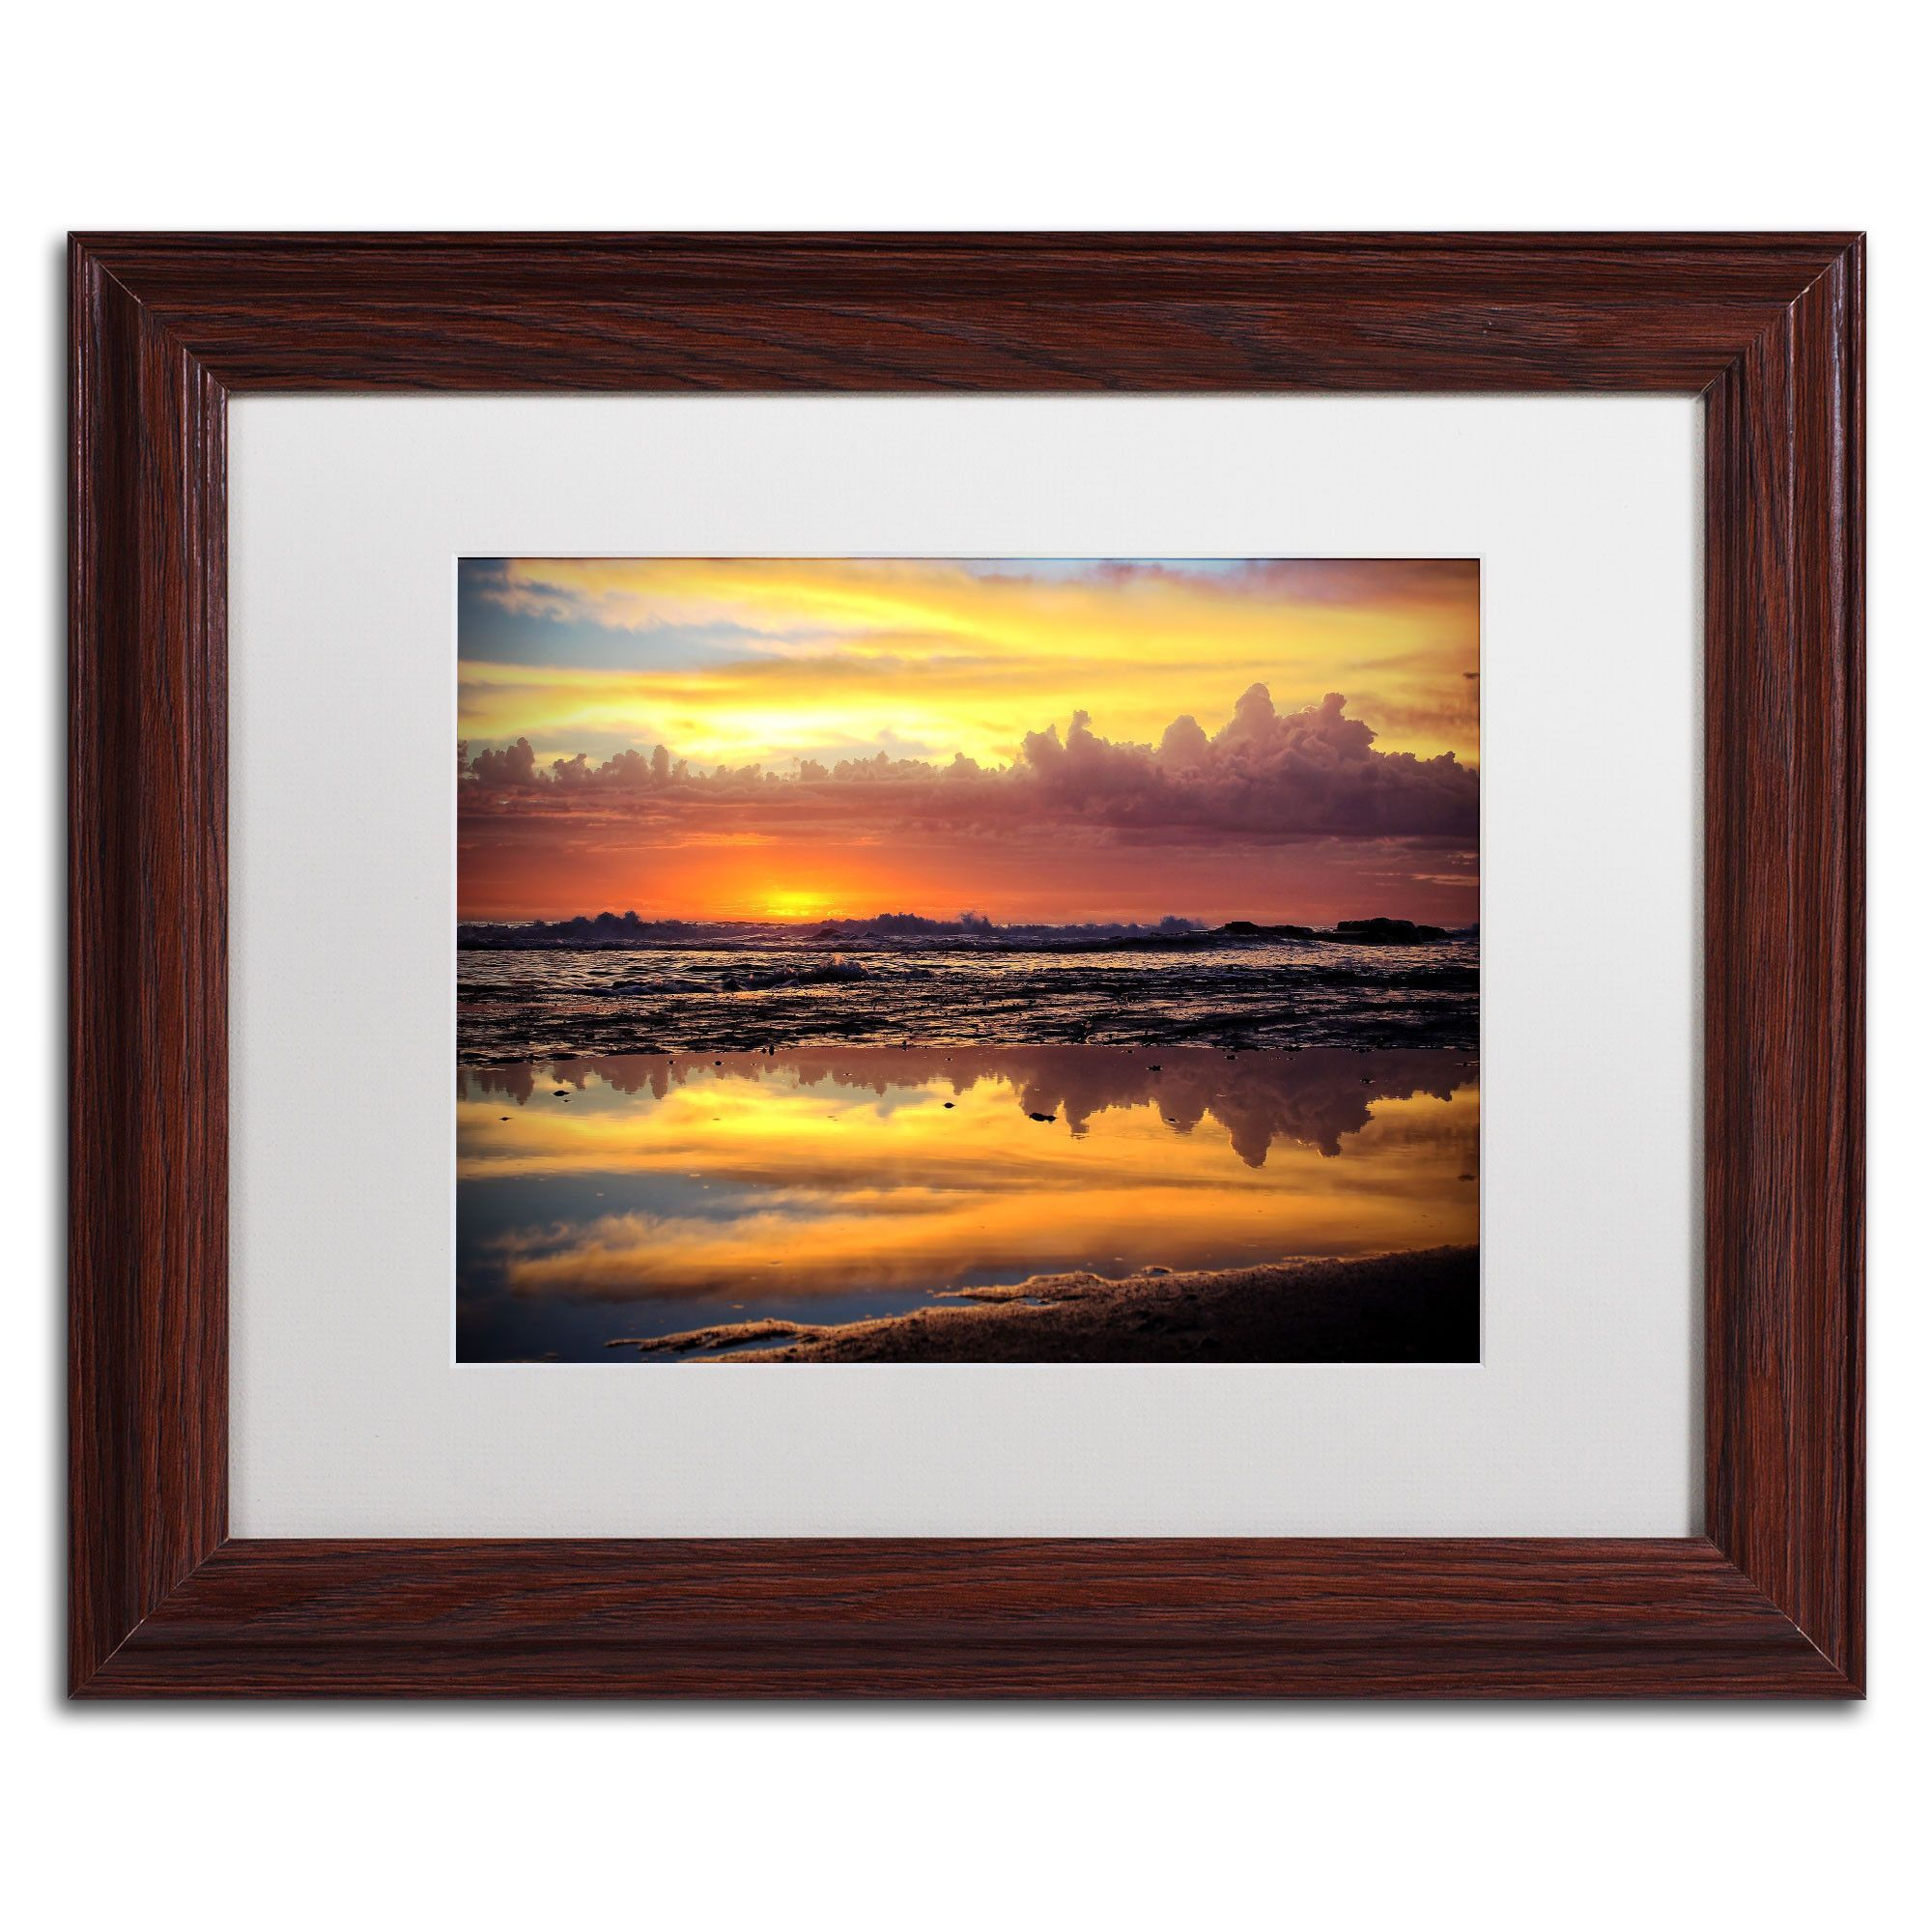 'Morning Reflections' by Beata Czyzowska Young Framed Photographic Print